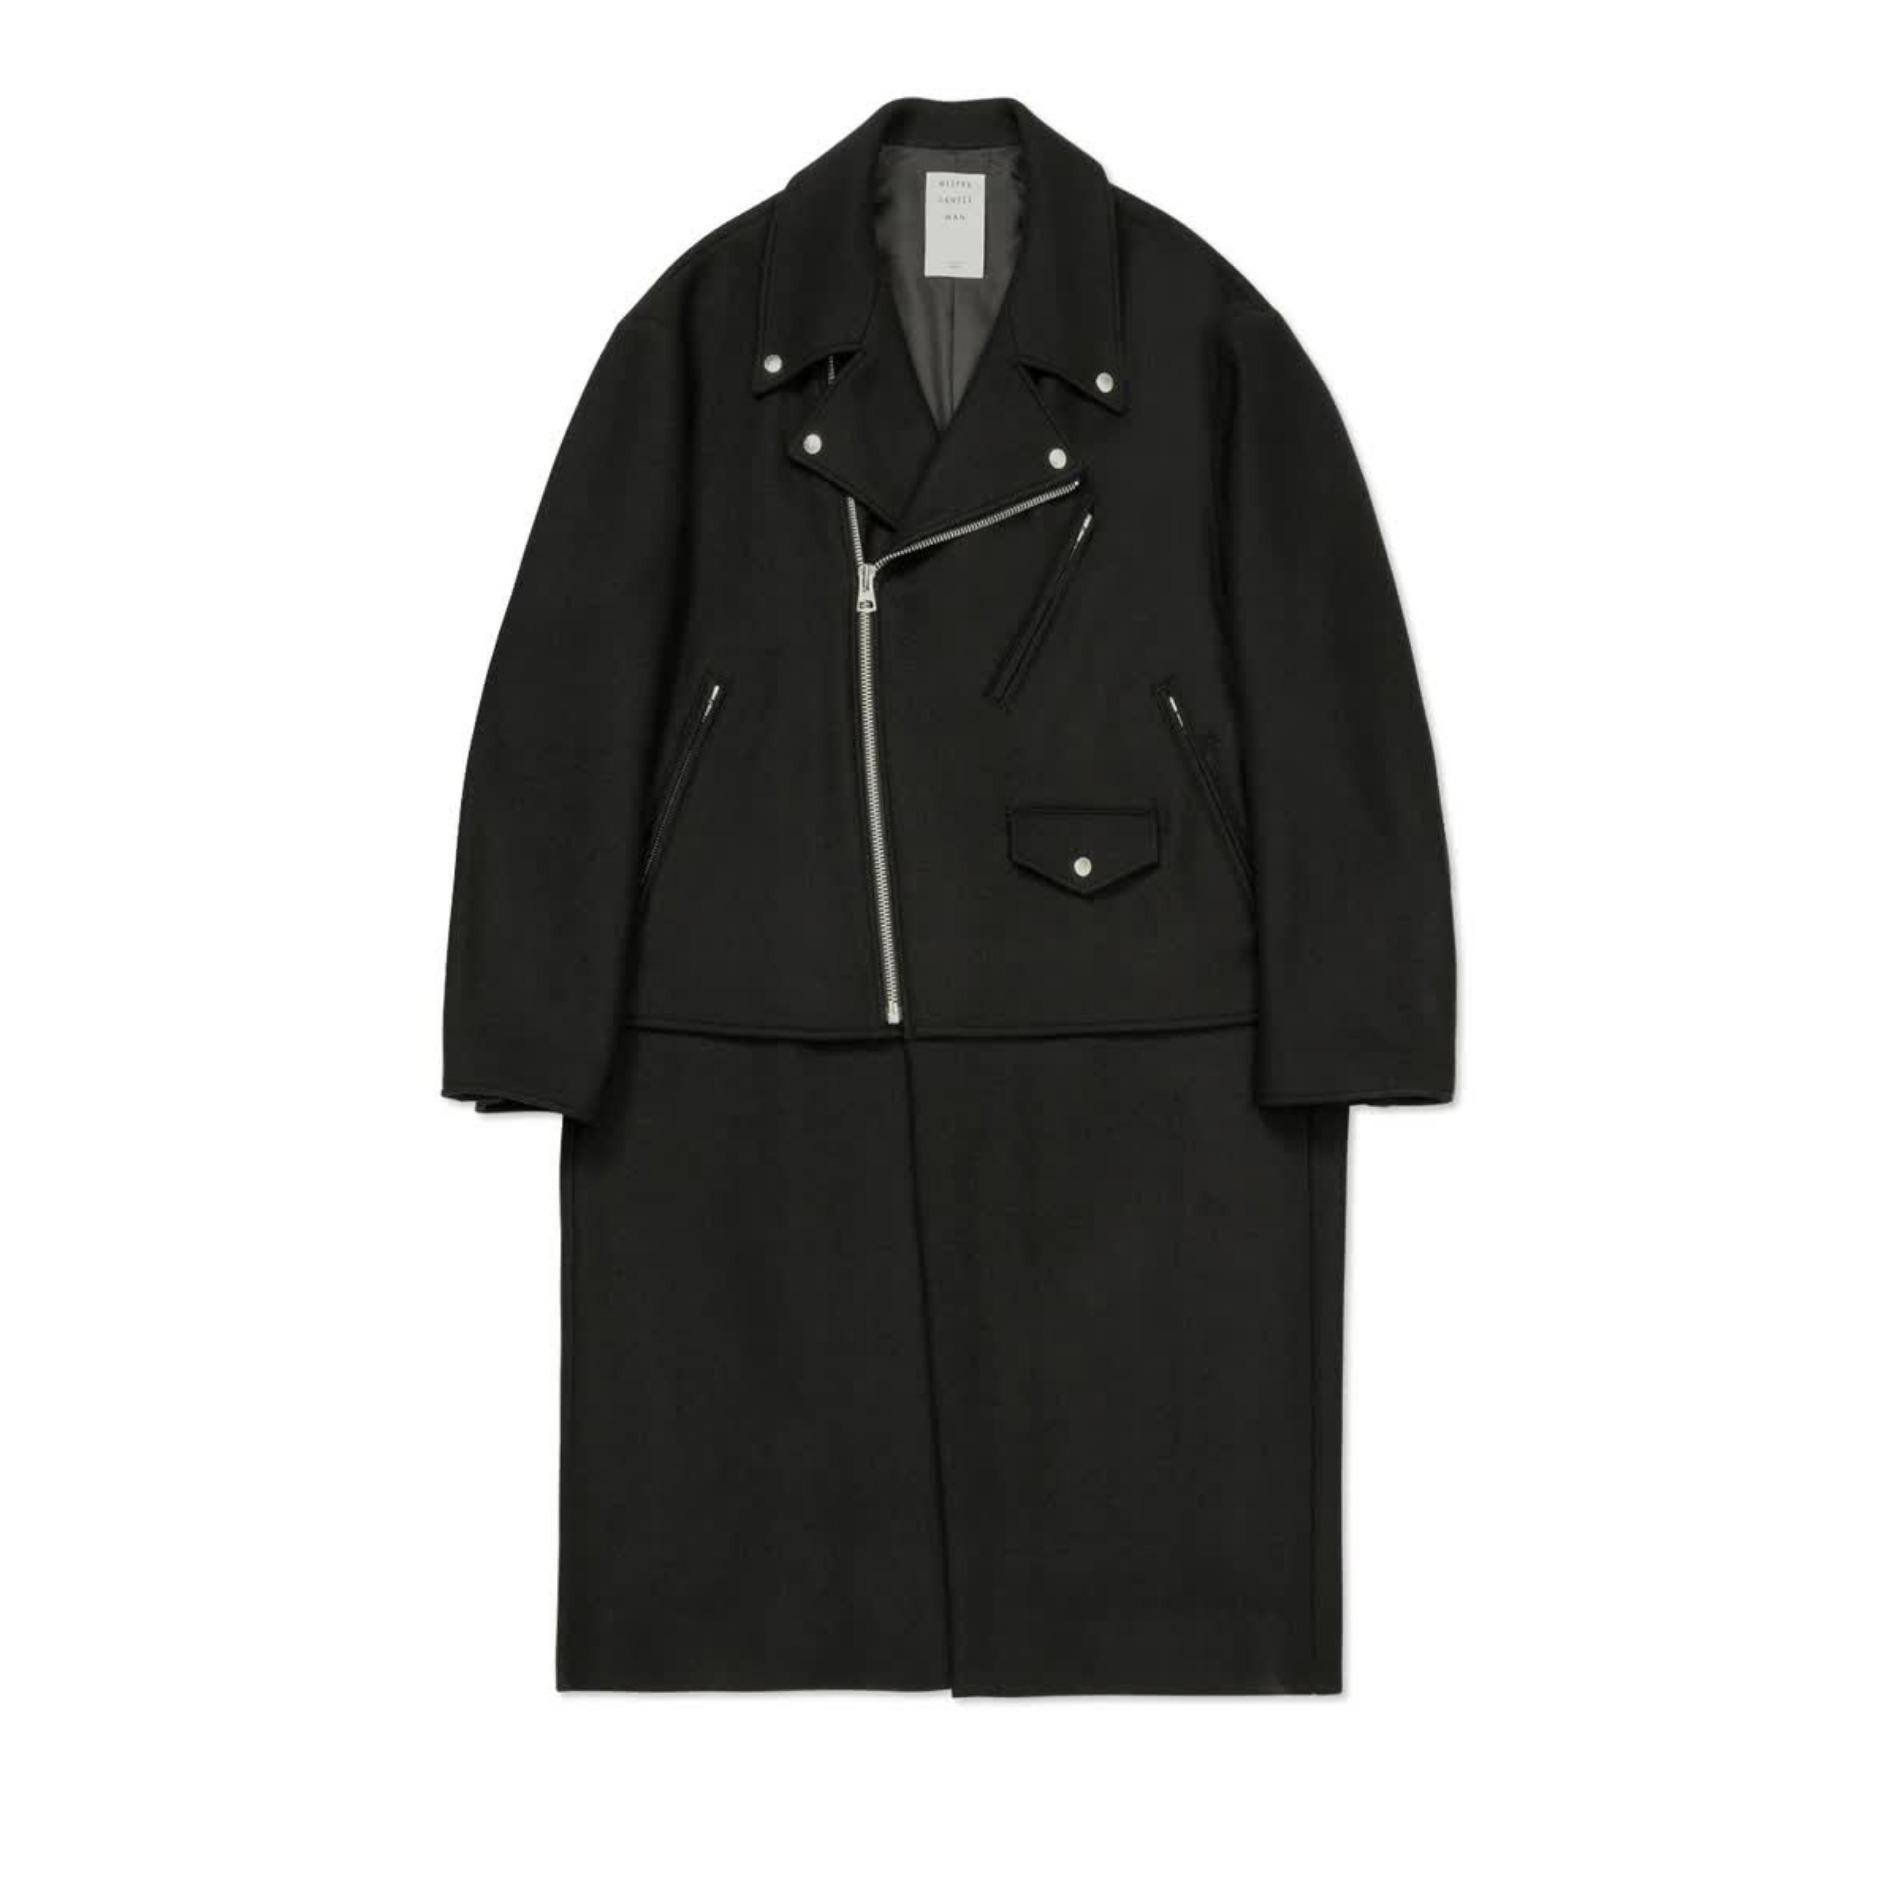 AW20 MISTER GENTLEMAN RIDERS FRONT COAT BLACK